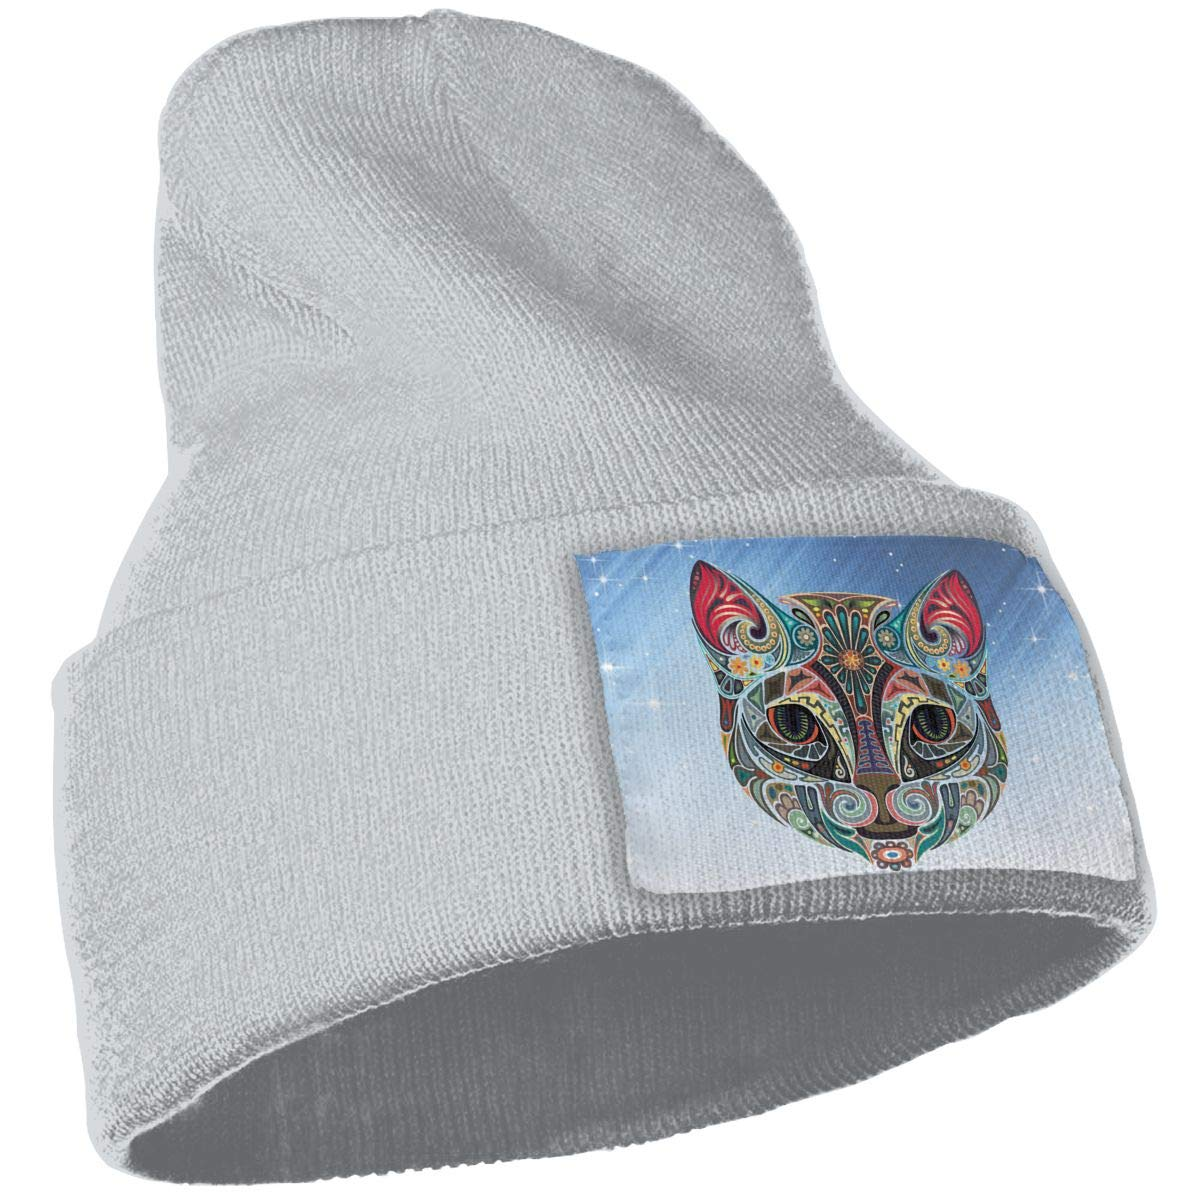 Painted Cat Hat for Men and Women Winter Warm Hats Knit Slouchy Thick Skull Cap